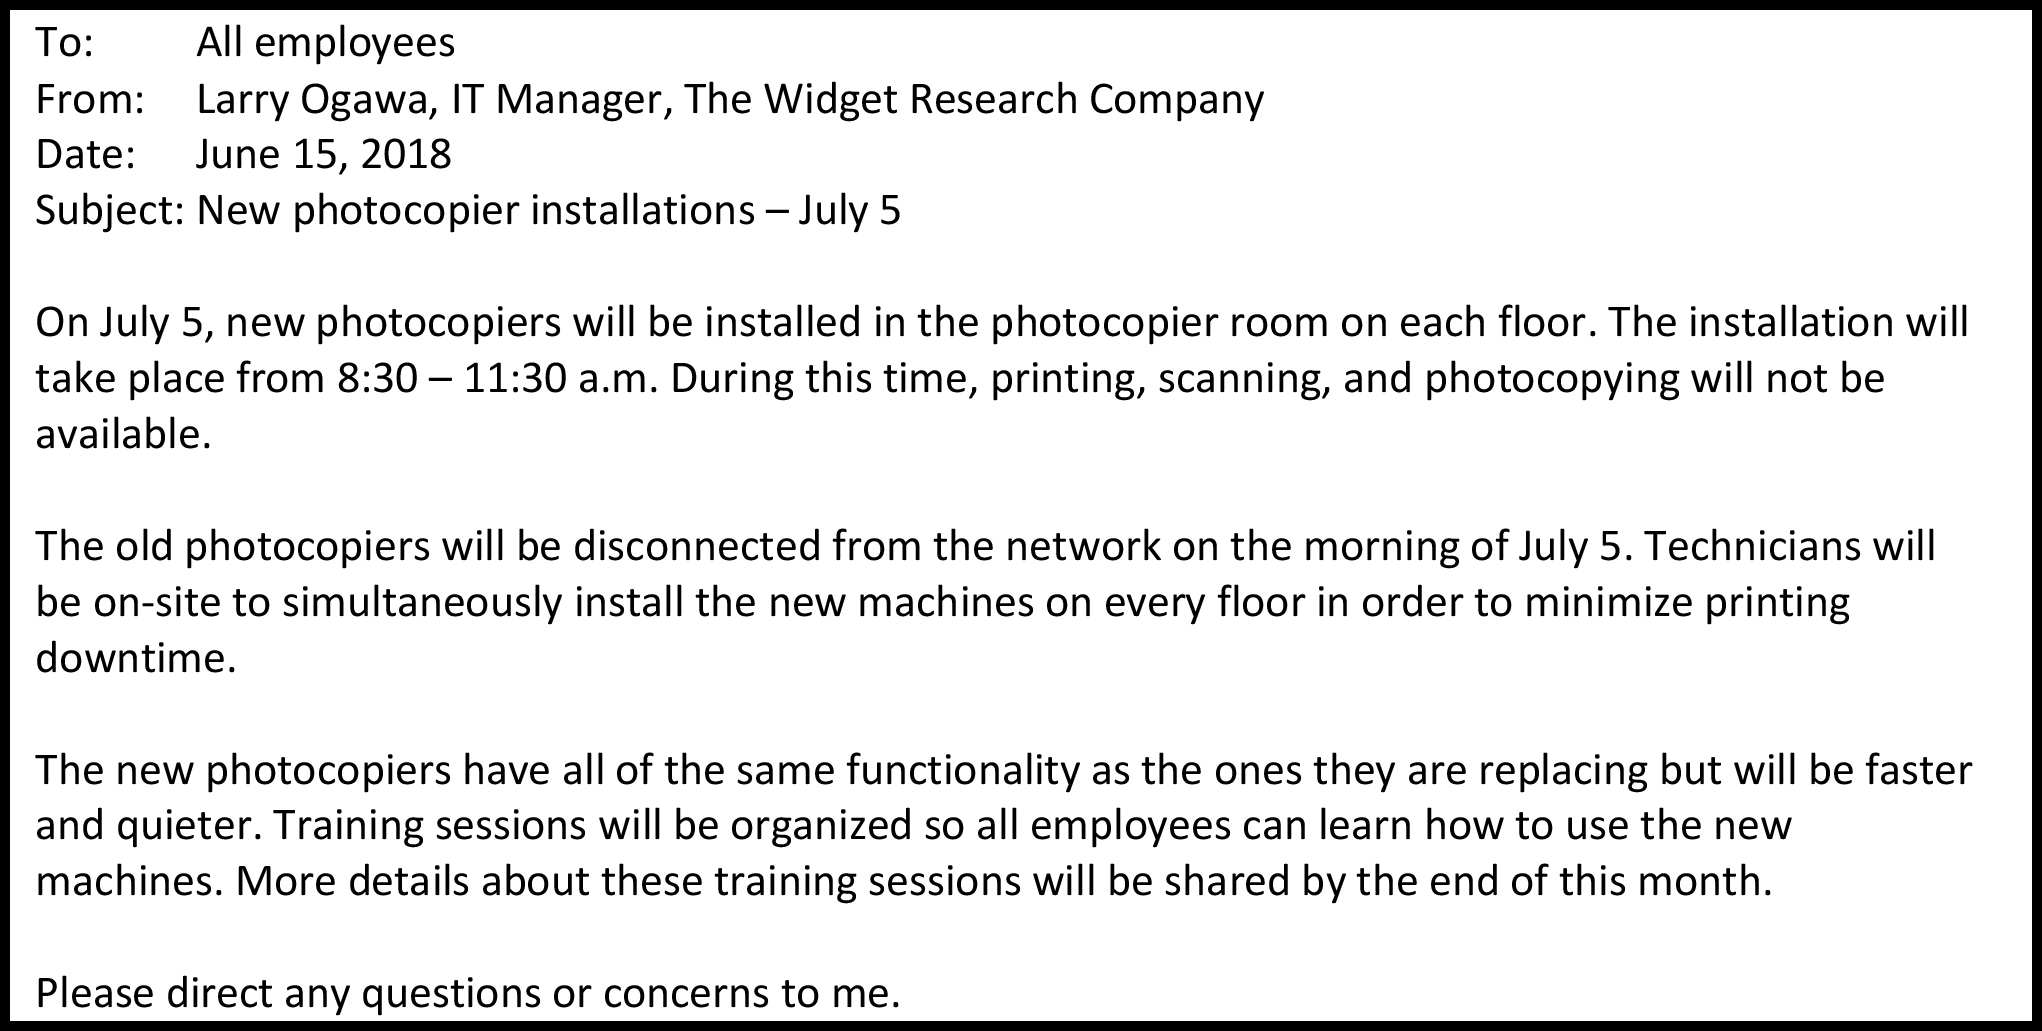 To: All employees From: Larry Ogawa, IT Manager, The Widget Research Company Date: June 15, 2018 Subject: New photocopier installations – July 5 On July 5, new photocopiers will be installed in the photocopier room on each floor. The installation will take place from 8:30 – 11:30 a.m. During this time, printing, scanning, and photocopying will not be available. The old photocopiers will be disconnected from the network on the morning of July 5. Technicians will be on-site to simultaneously install the new machines on every floor in order to minimize printing downtime. The new photocopiers have all of the same functionality as the ones they are replacing but will be faster and quieter. Training sessions will be organized so all employees can learn how to use the new machines. More details about these training sessions will be shared by the end of this month. Please direct any questions or concerns to me.